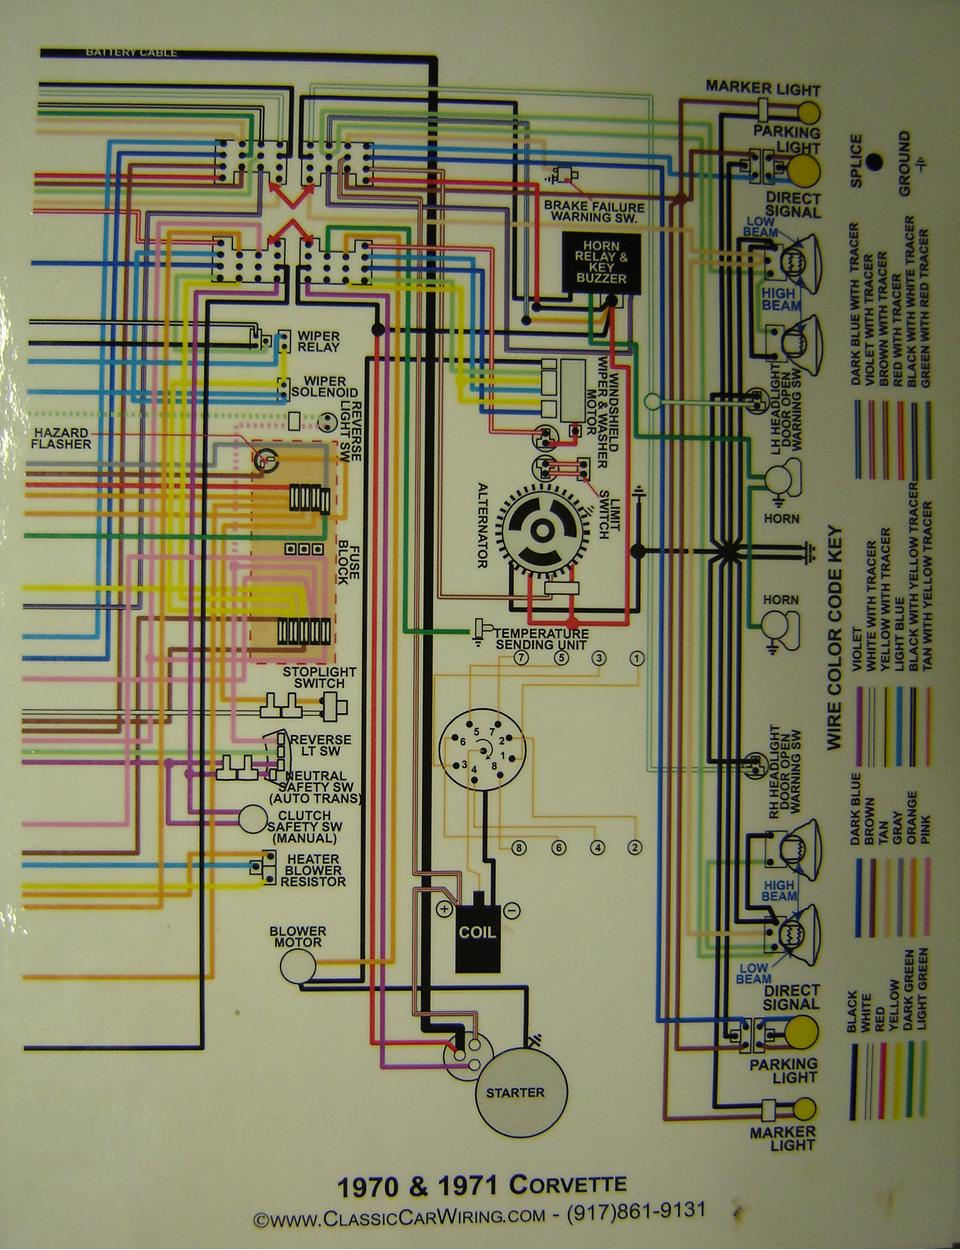 1970 71 corvette color wiring diagram B chevy diagrams 1971 corvette wiring diagram at panicattacktreatment.co